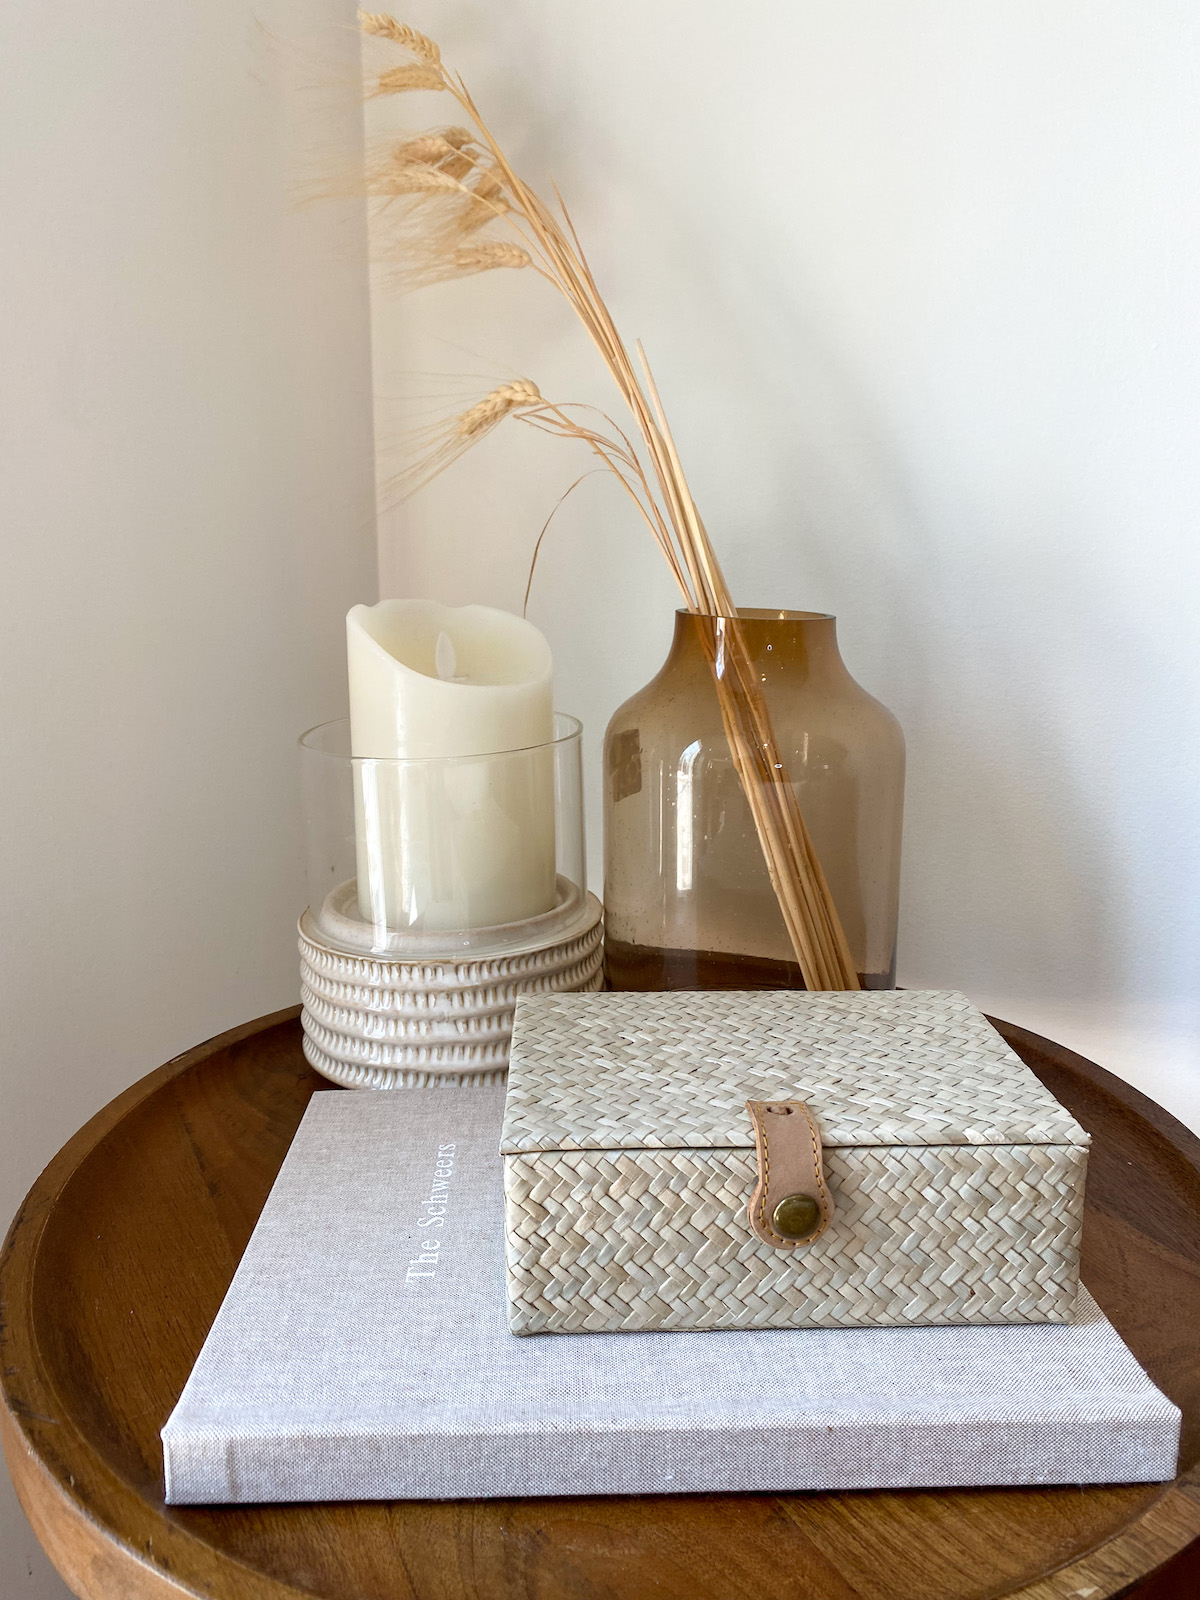 Circular side table with candle, dried straw in glass vase, and Artifact Uprising Layflat Photo Album